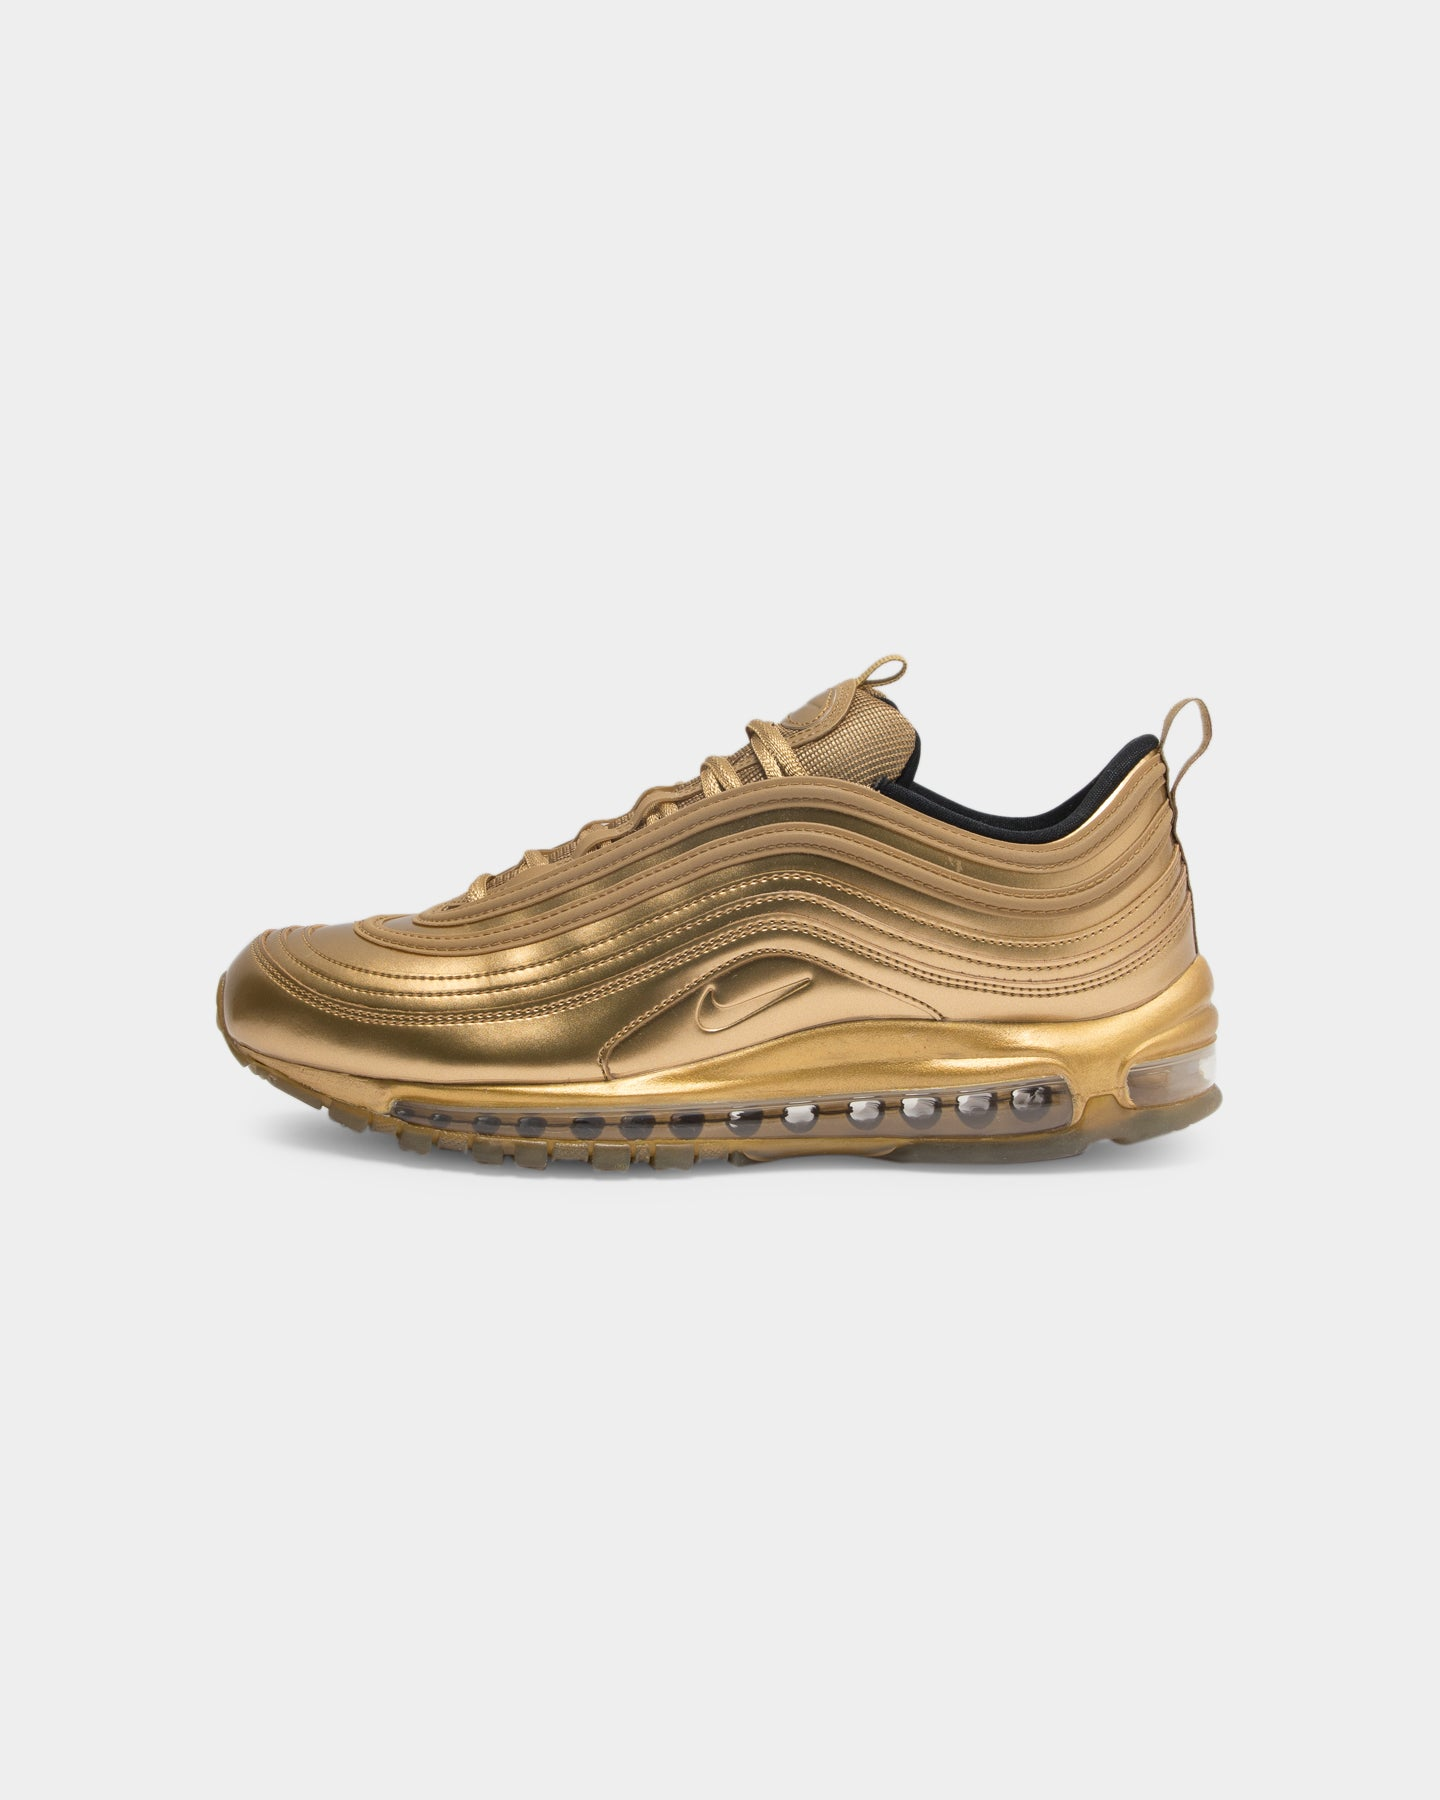 nike 97s black and gold